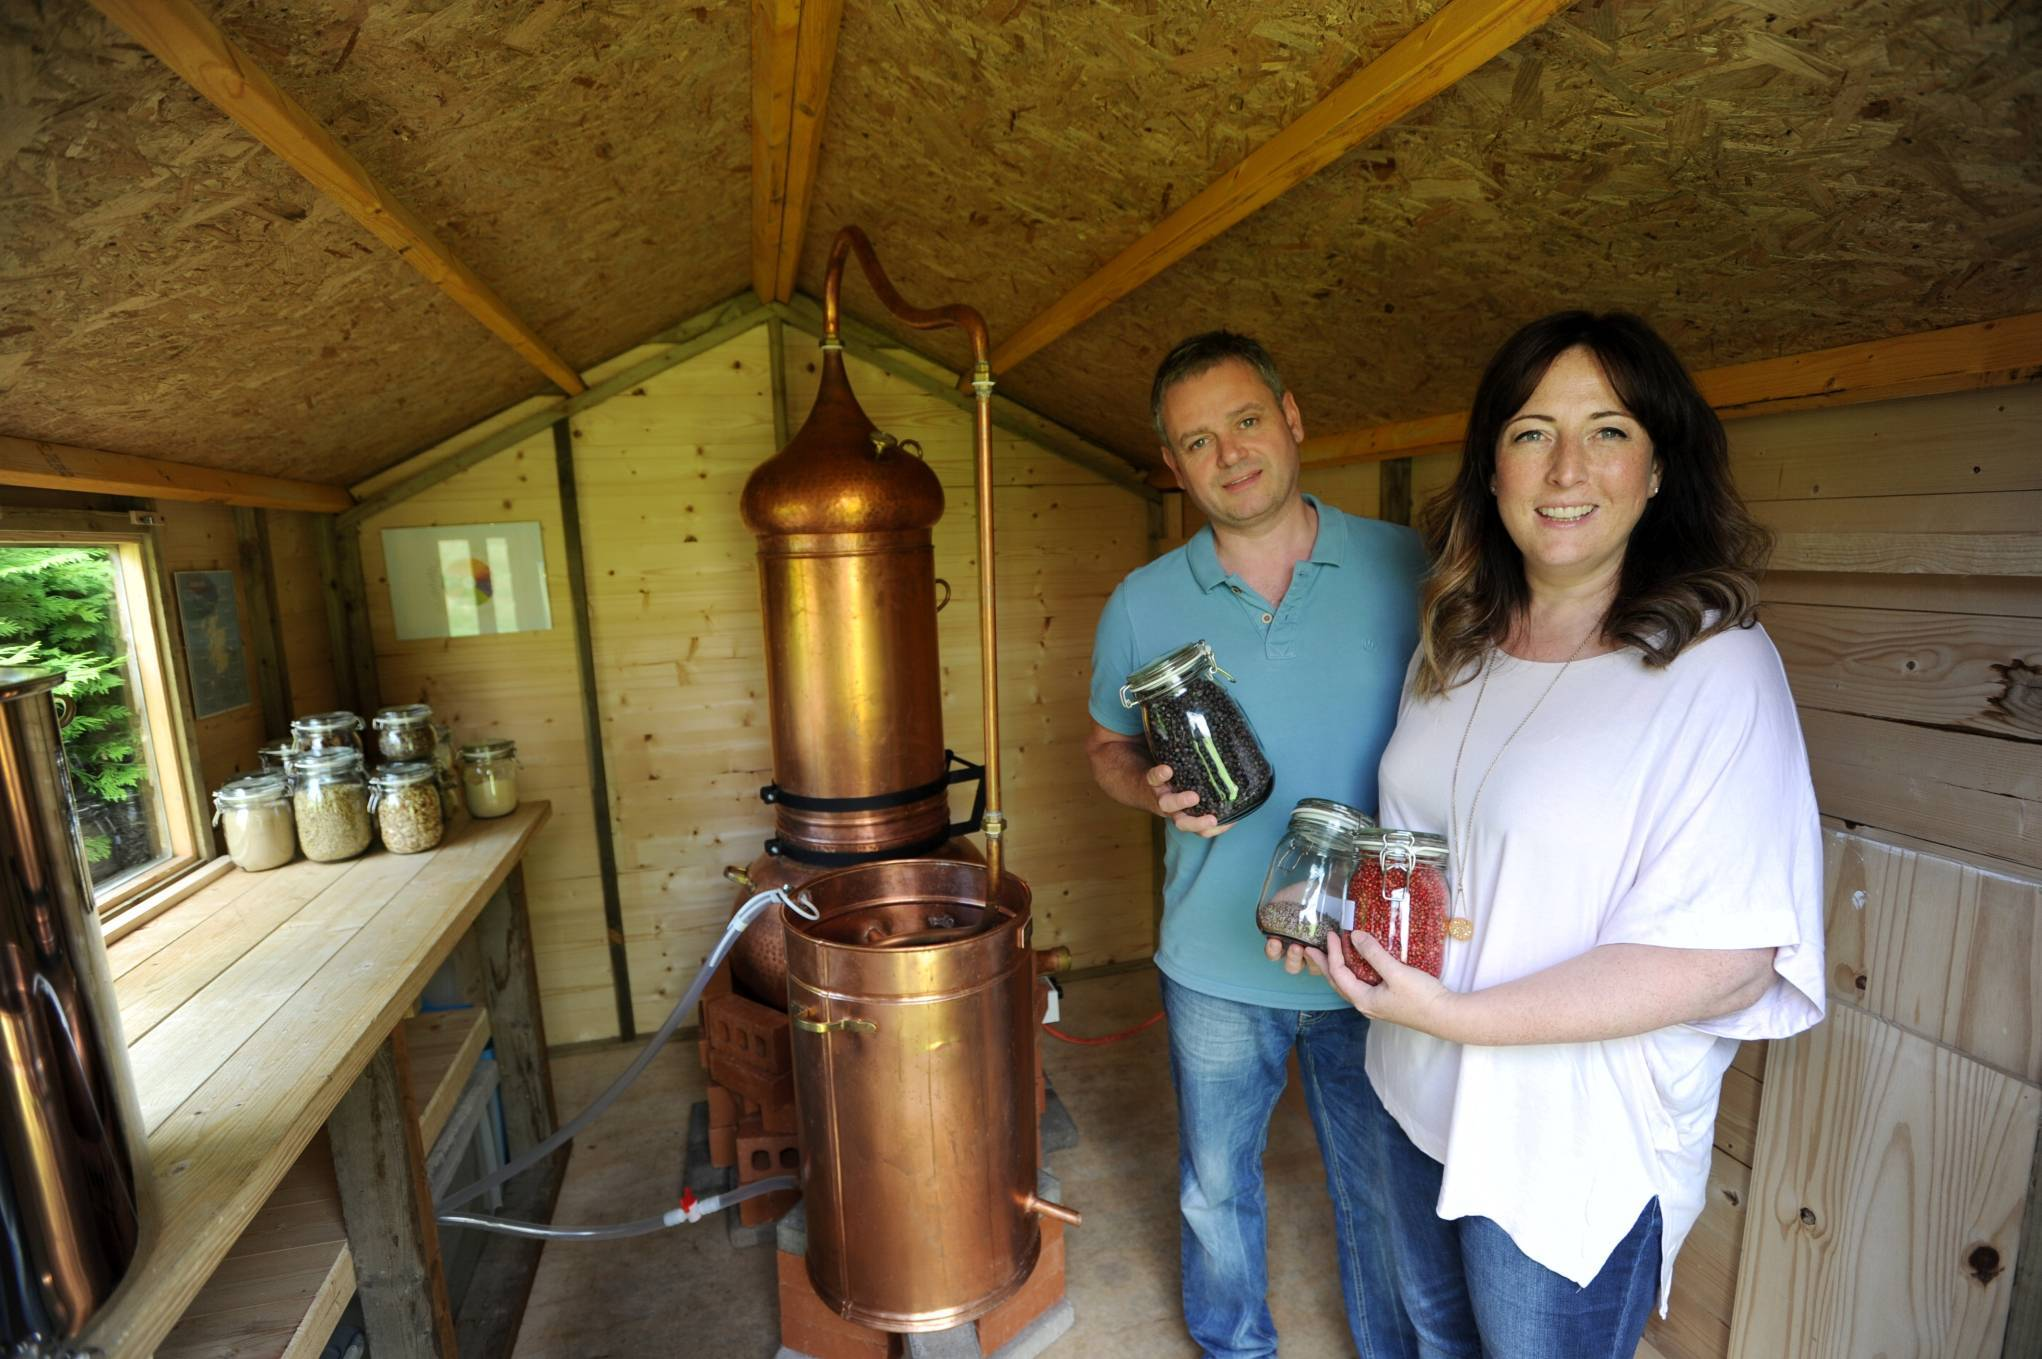 Steve and Lynne Duthie started their gin business in a shed